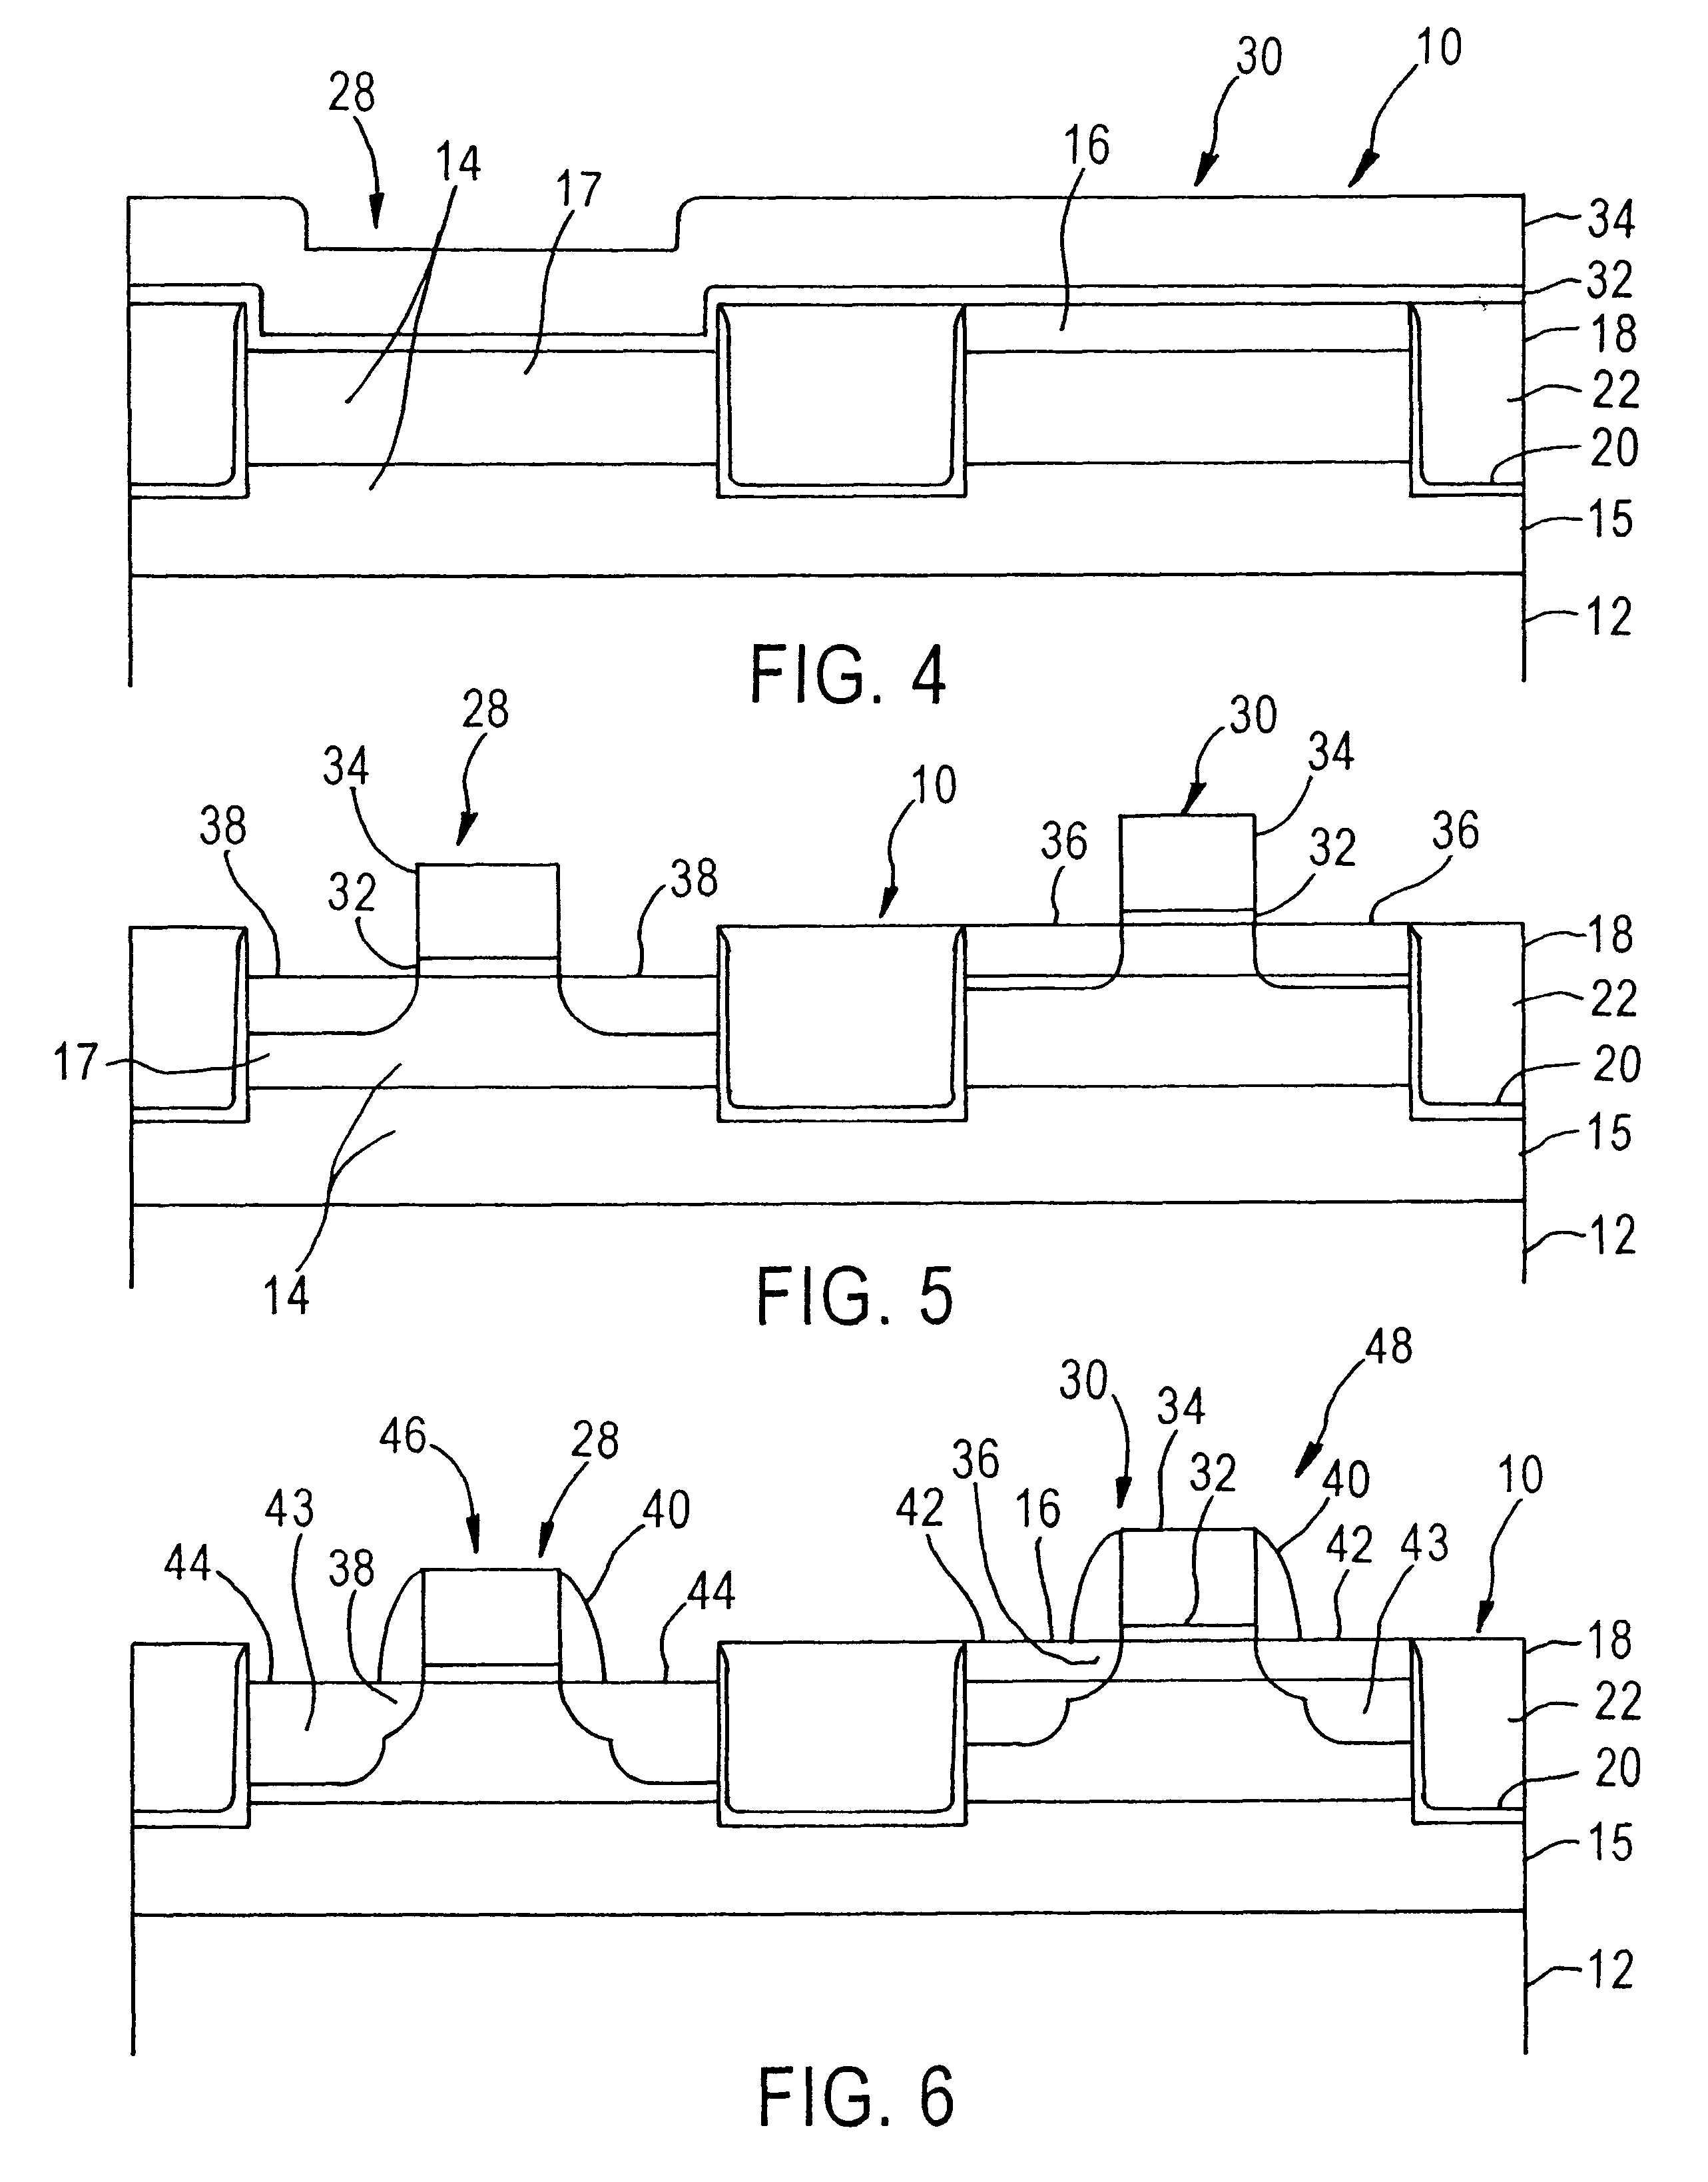 cmos with strained silicon channel nmos and silicon germanium